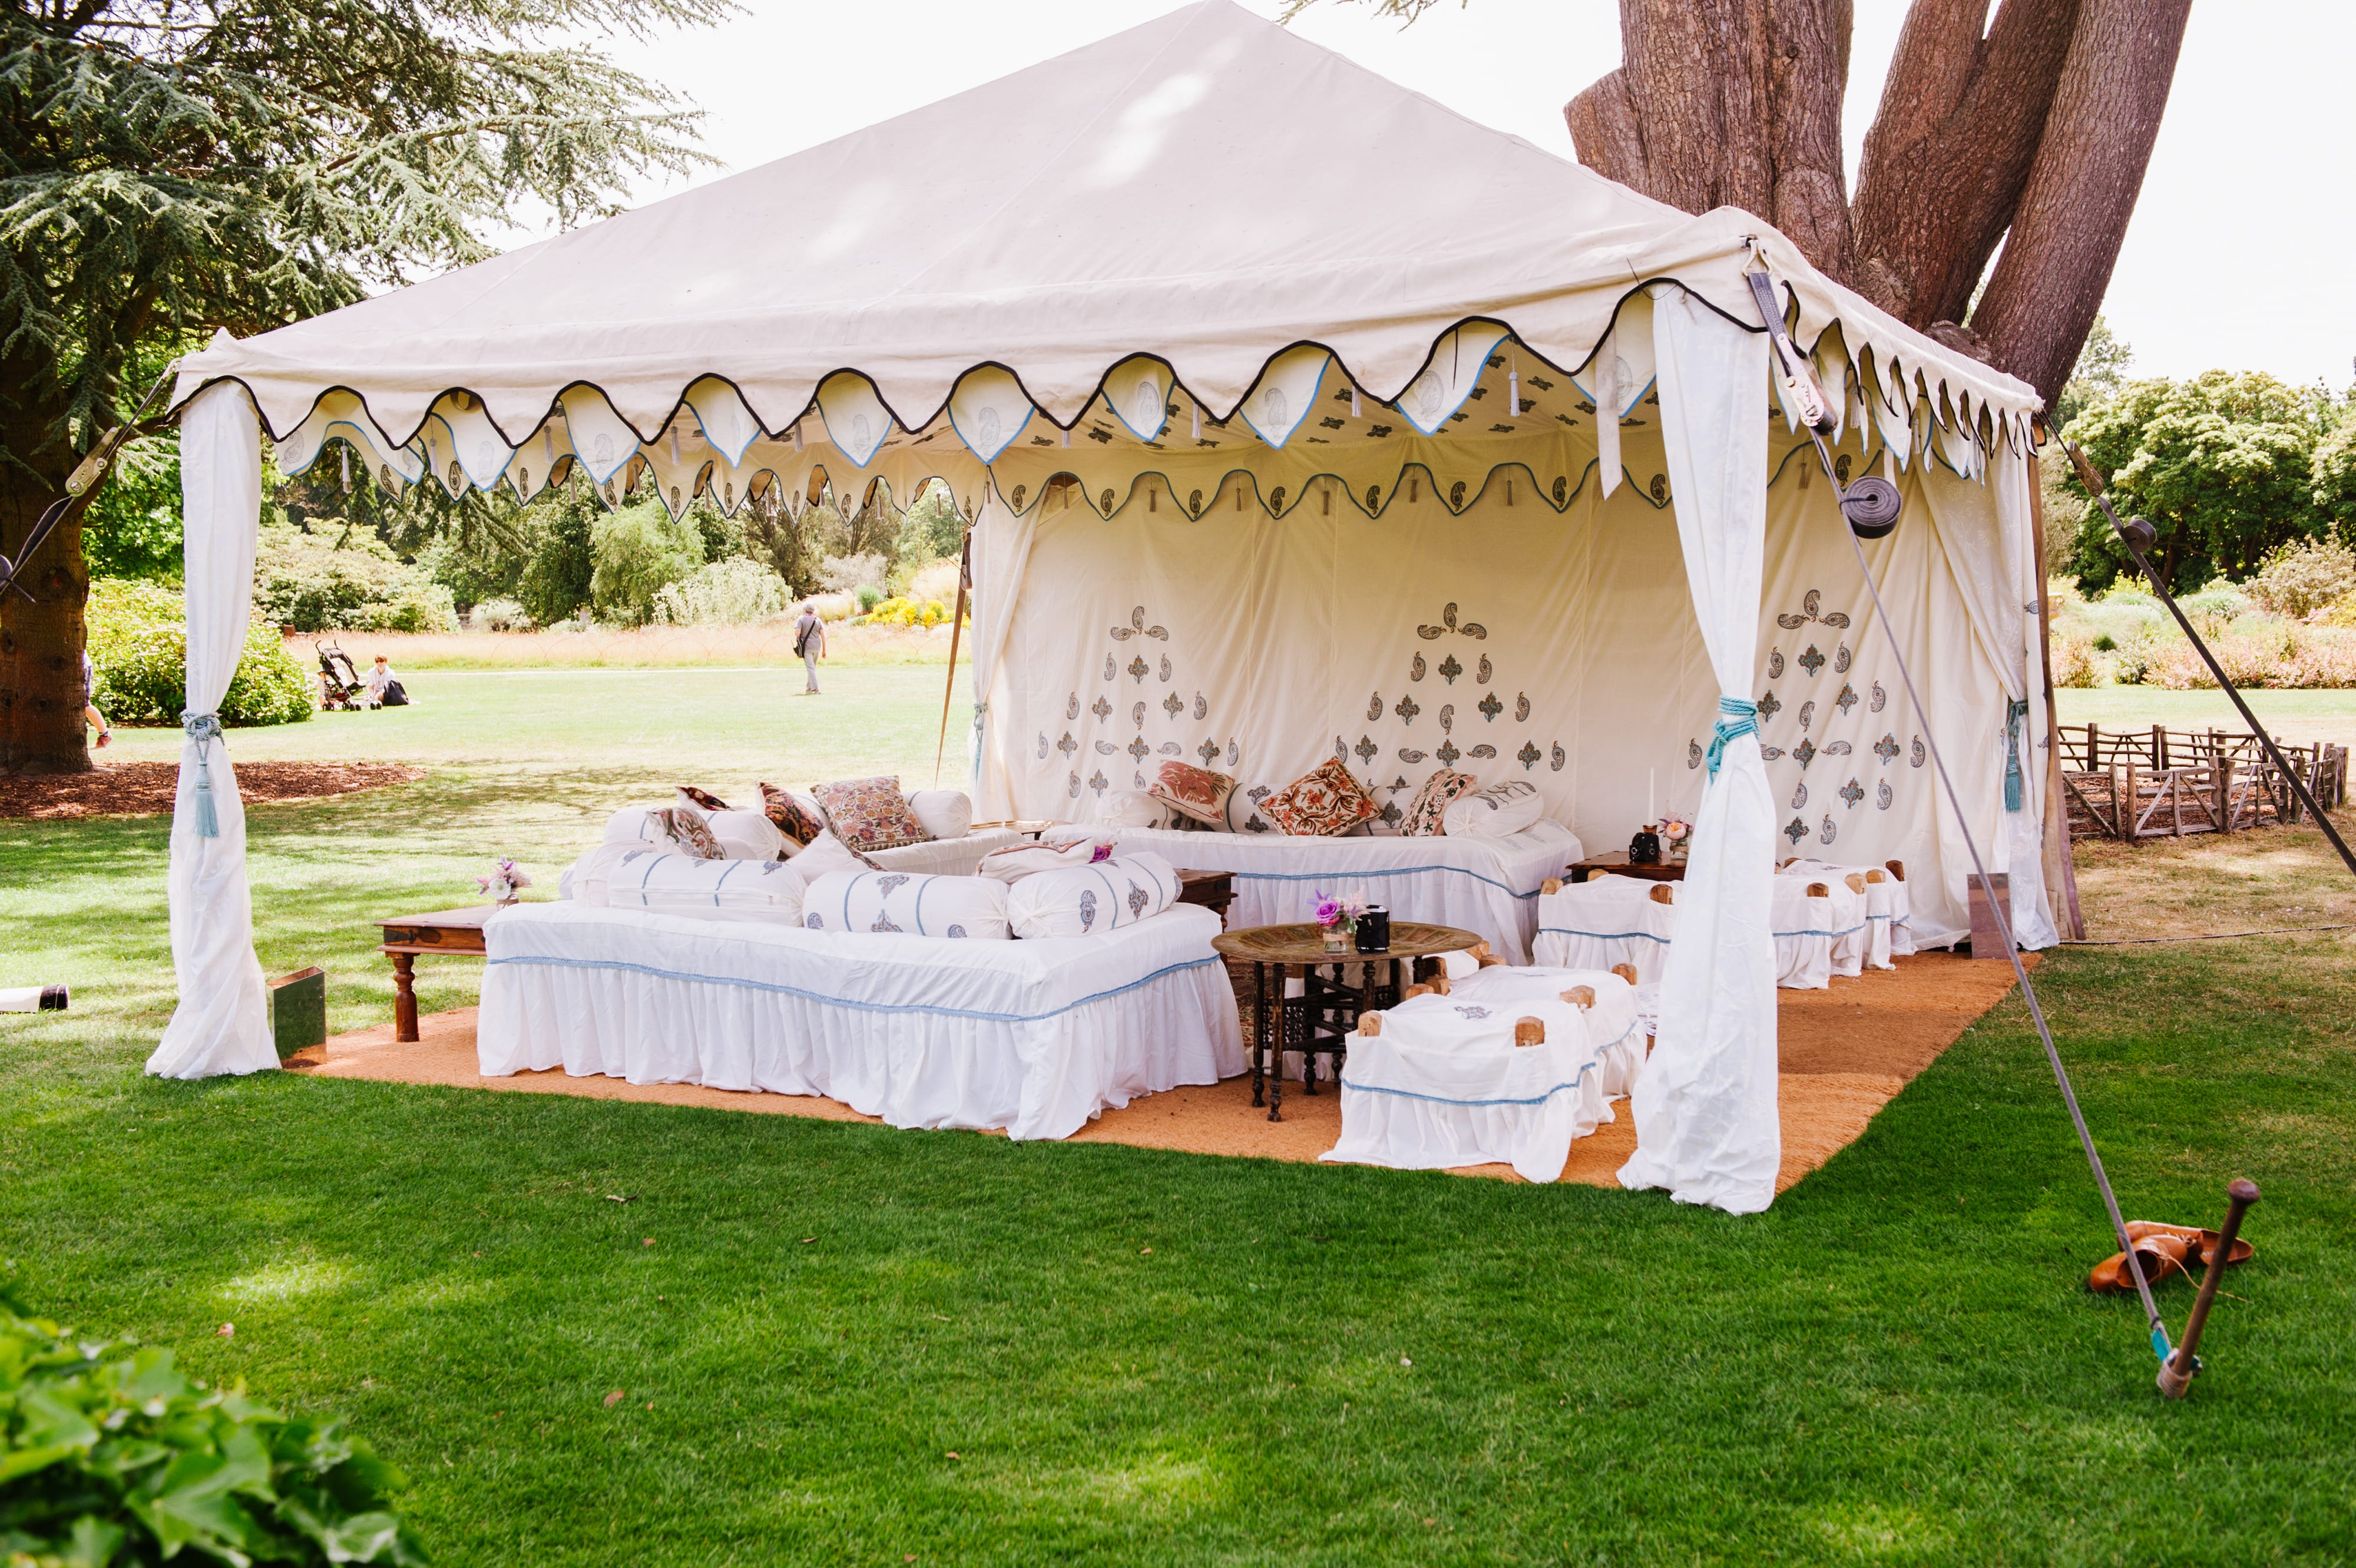 Garden marquee hire for garden parties across the uk for Arabian tent decoration